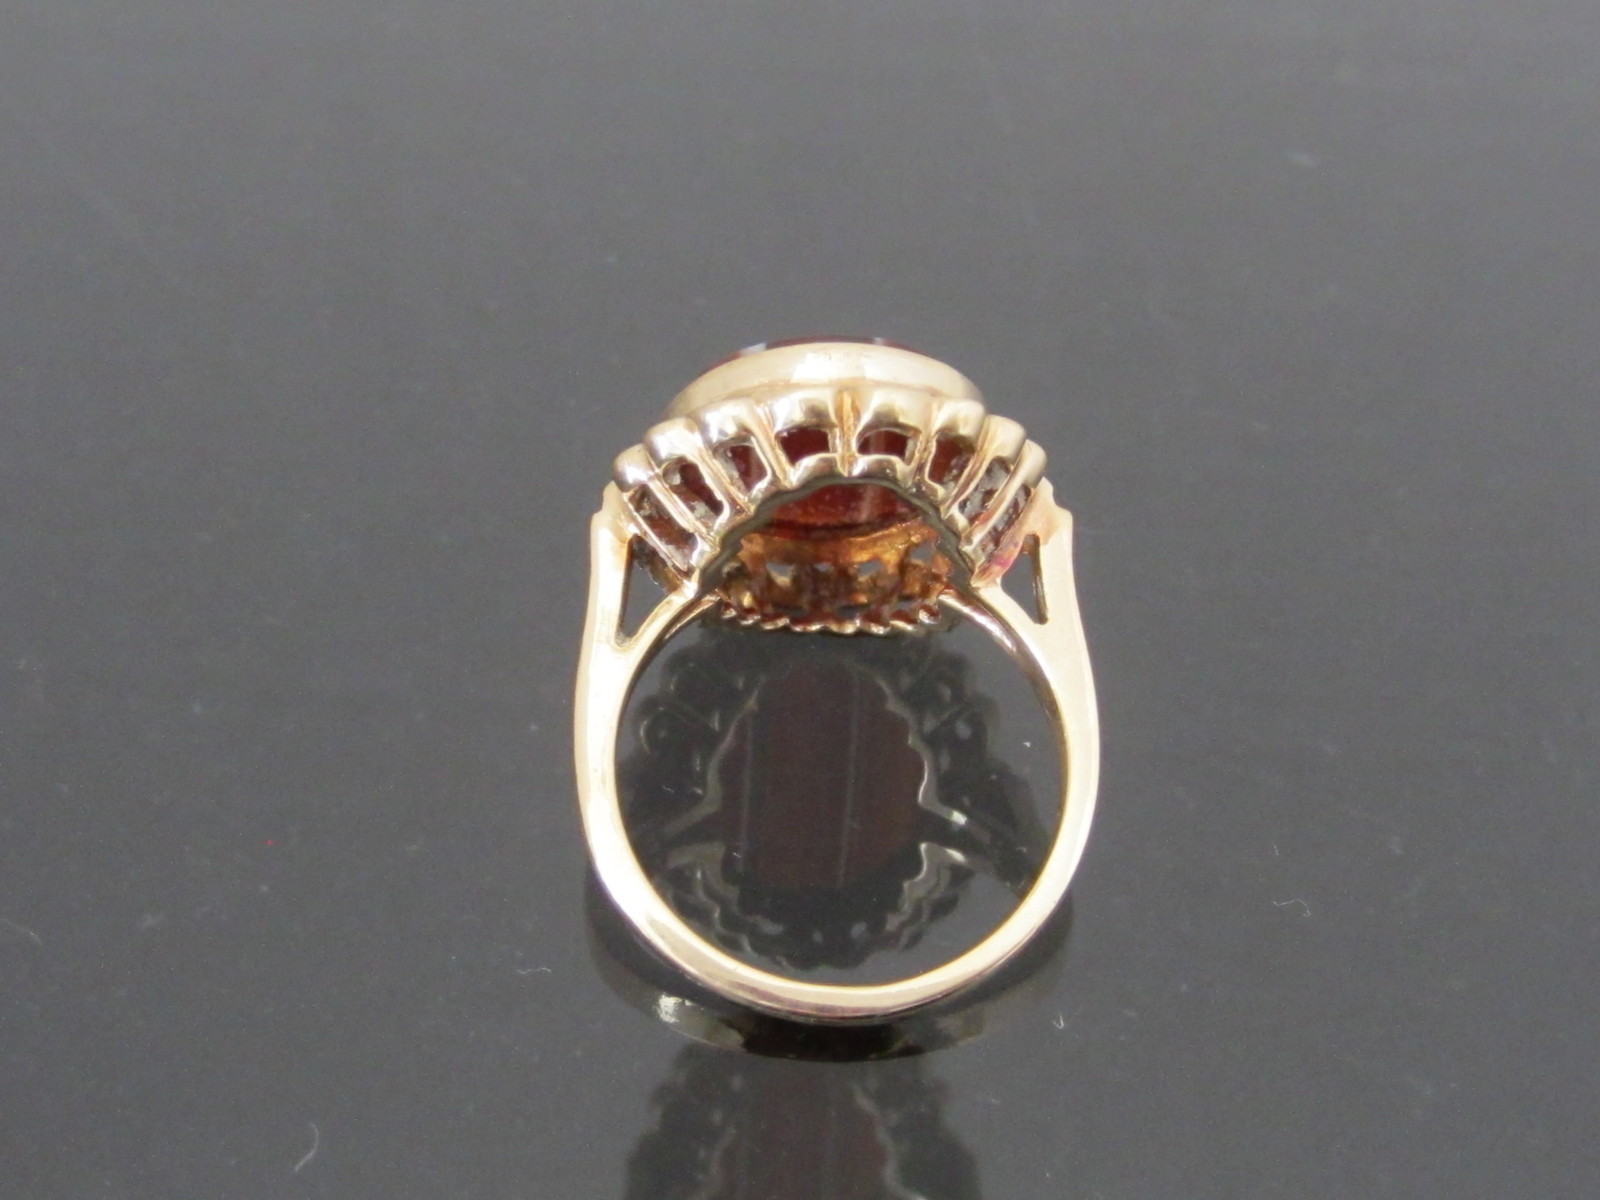 Vintage 1960s Natural Oval Banded Brown Agate Ring 2ct 10K Yellow Gold Size 6.5